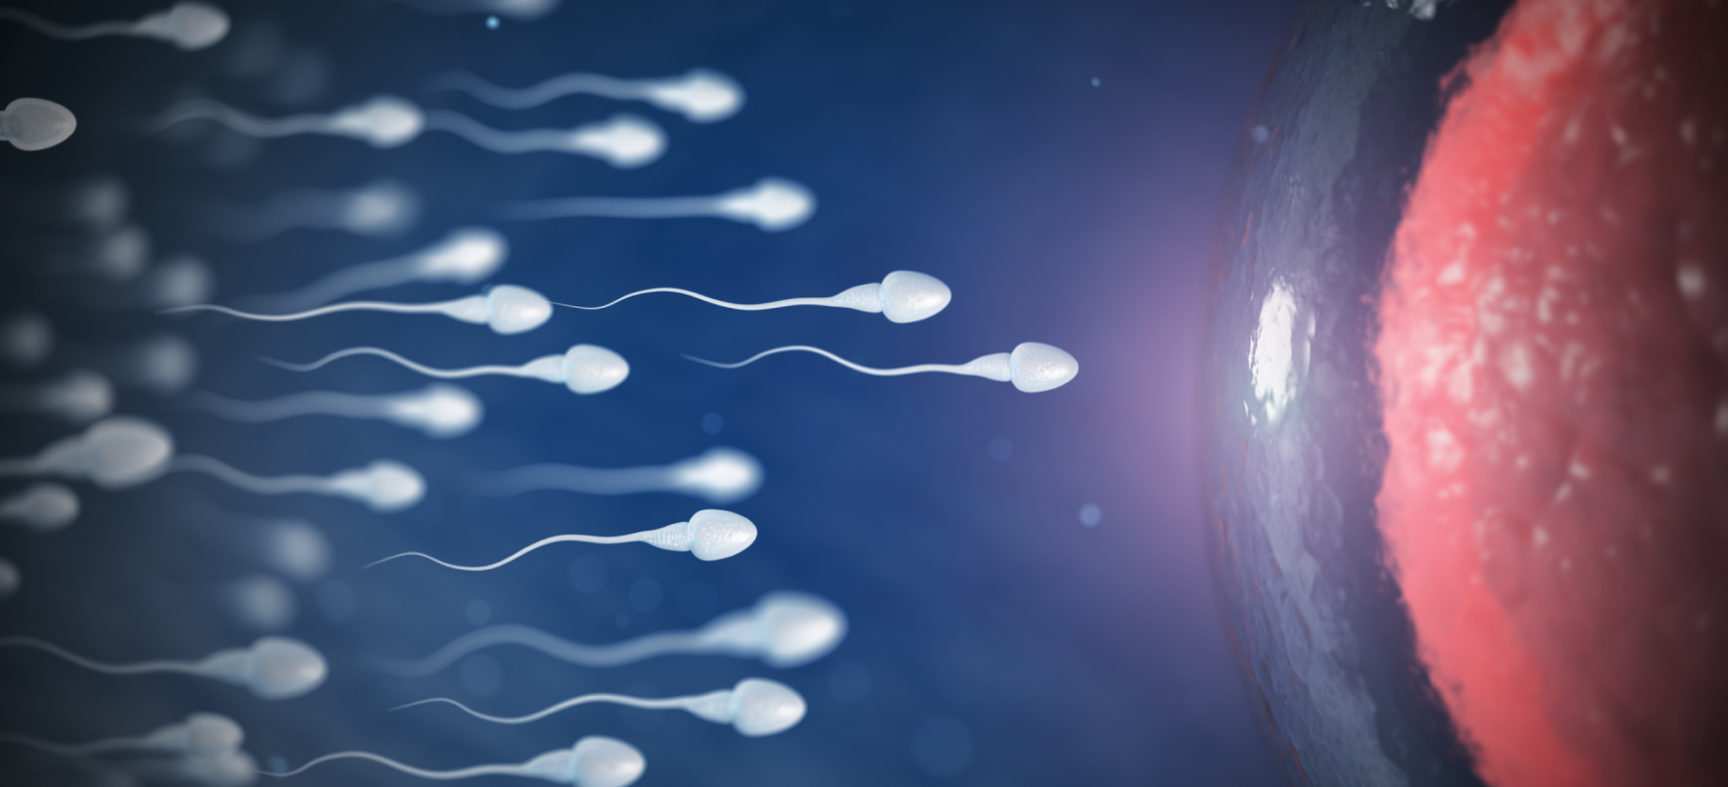 Sperm & Fertility: What You Need to Know